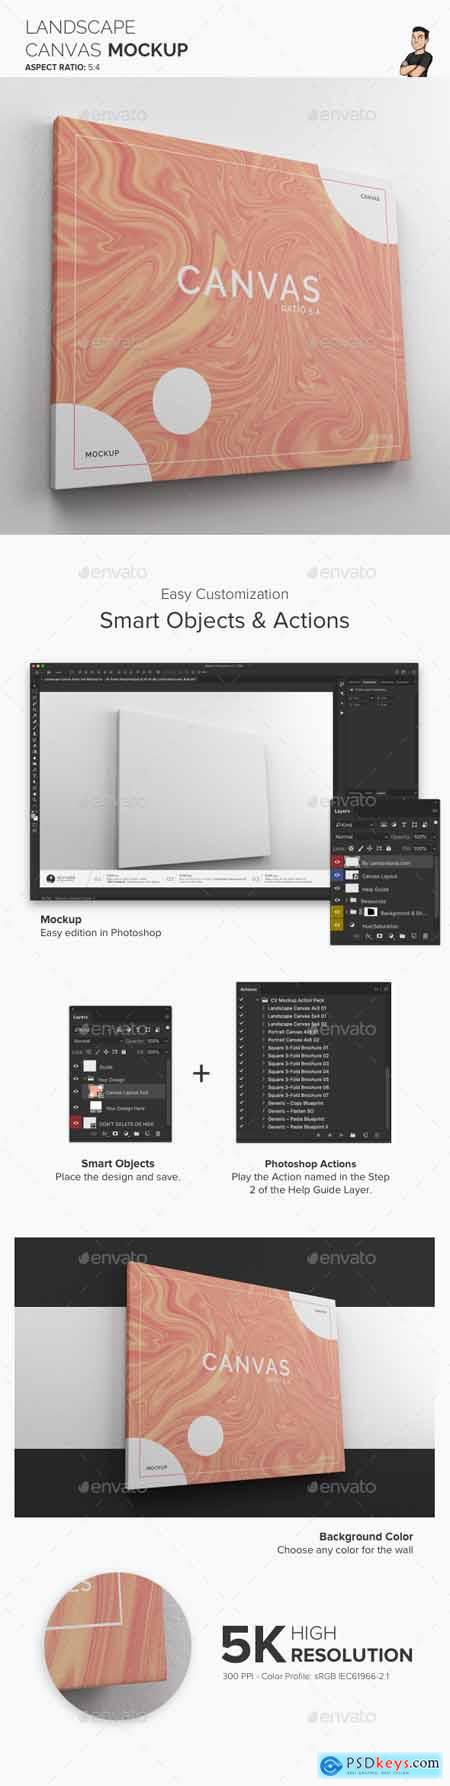 Landscape Canvas Ratio 5x4 Mockup 01